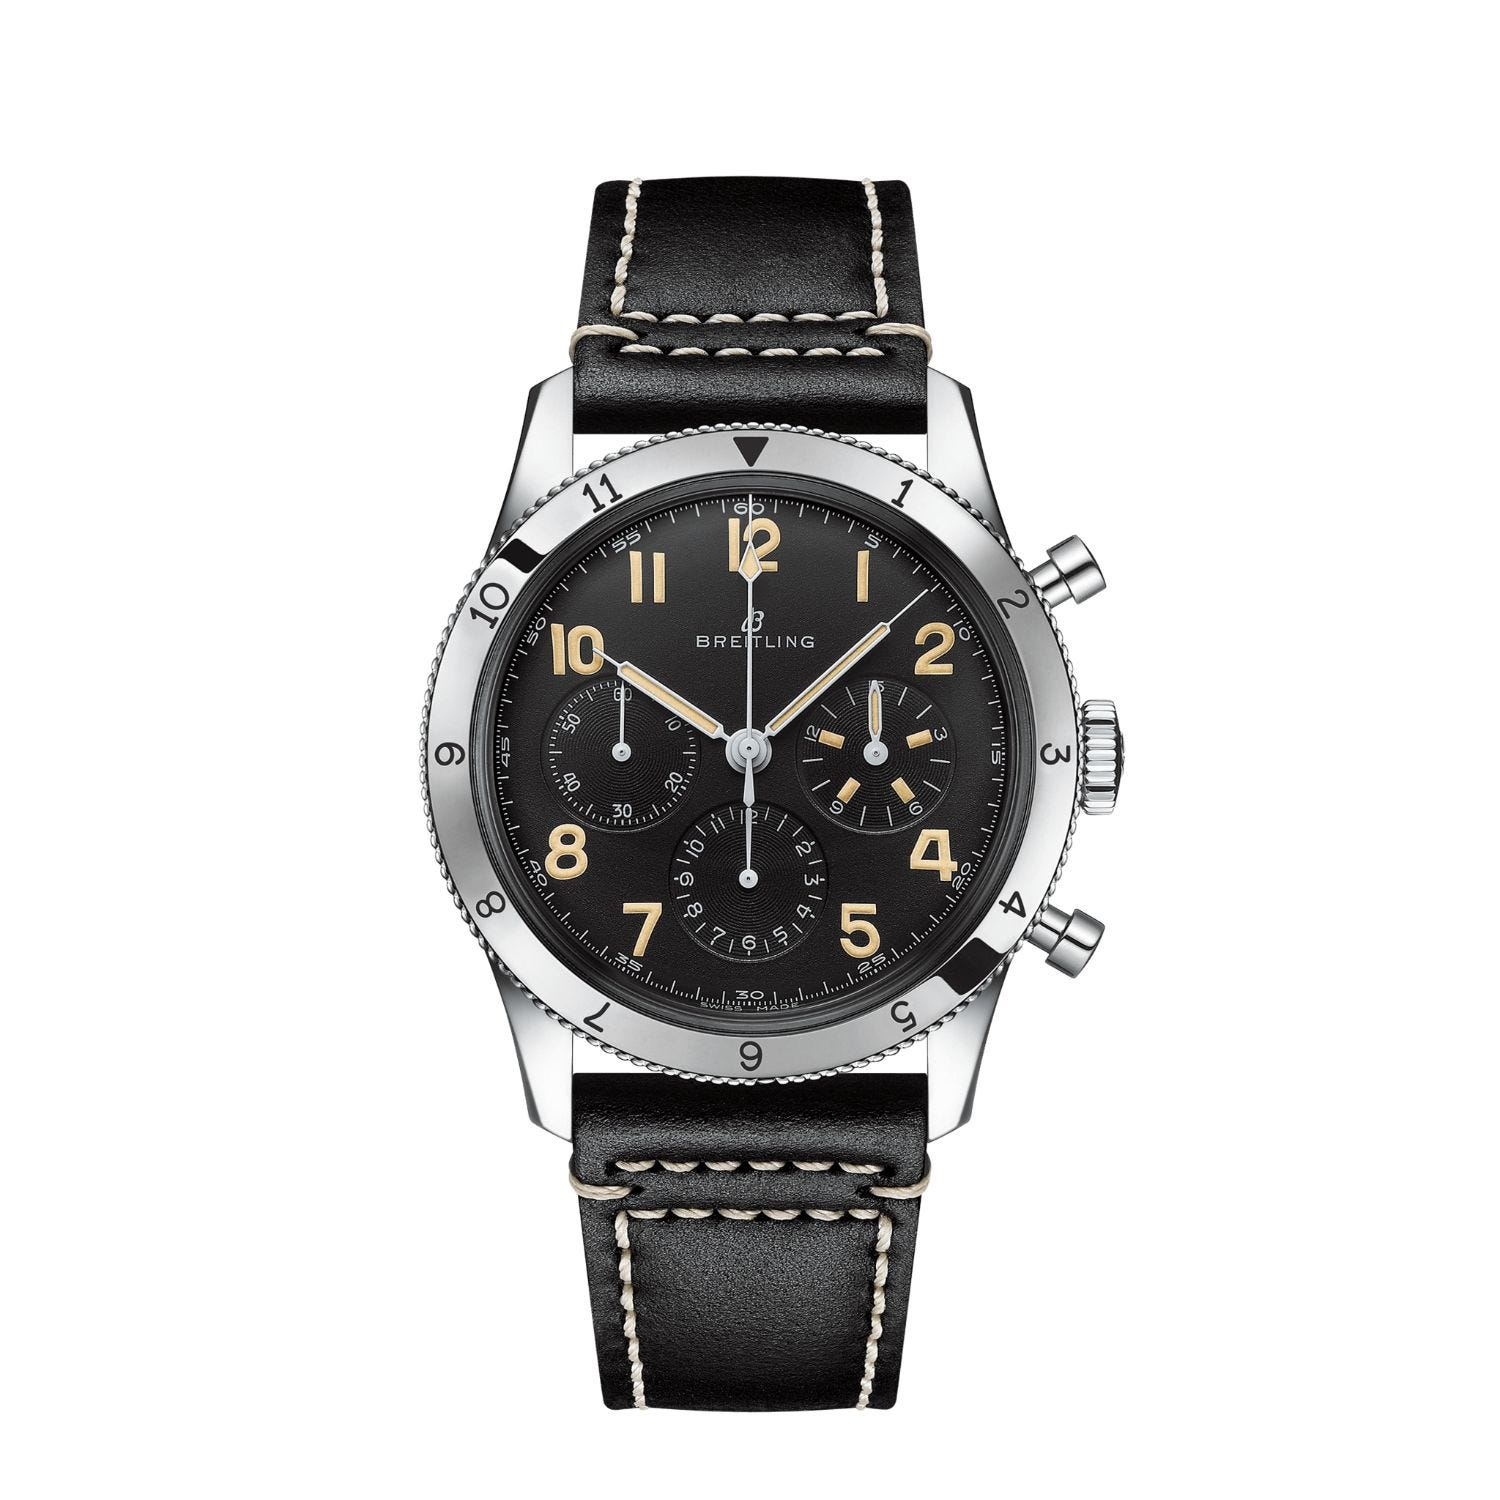 Breitling Aviator 8 Ref. 765 1953 Re-Edition Leather Strap Watch